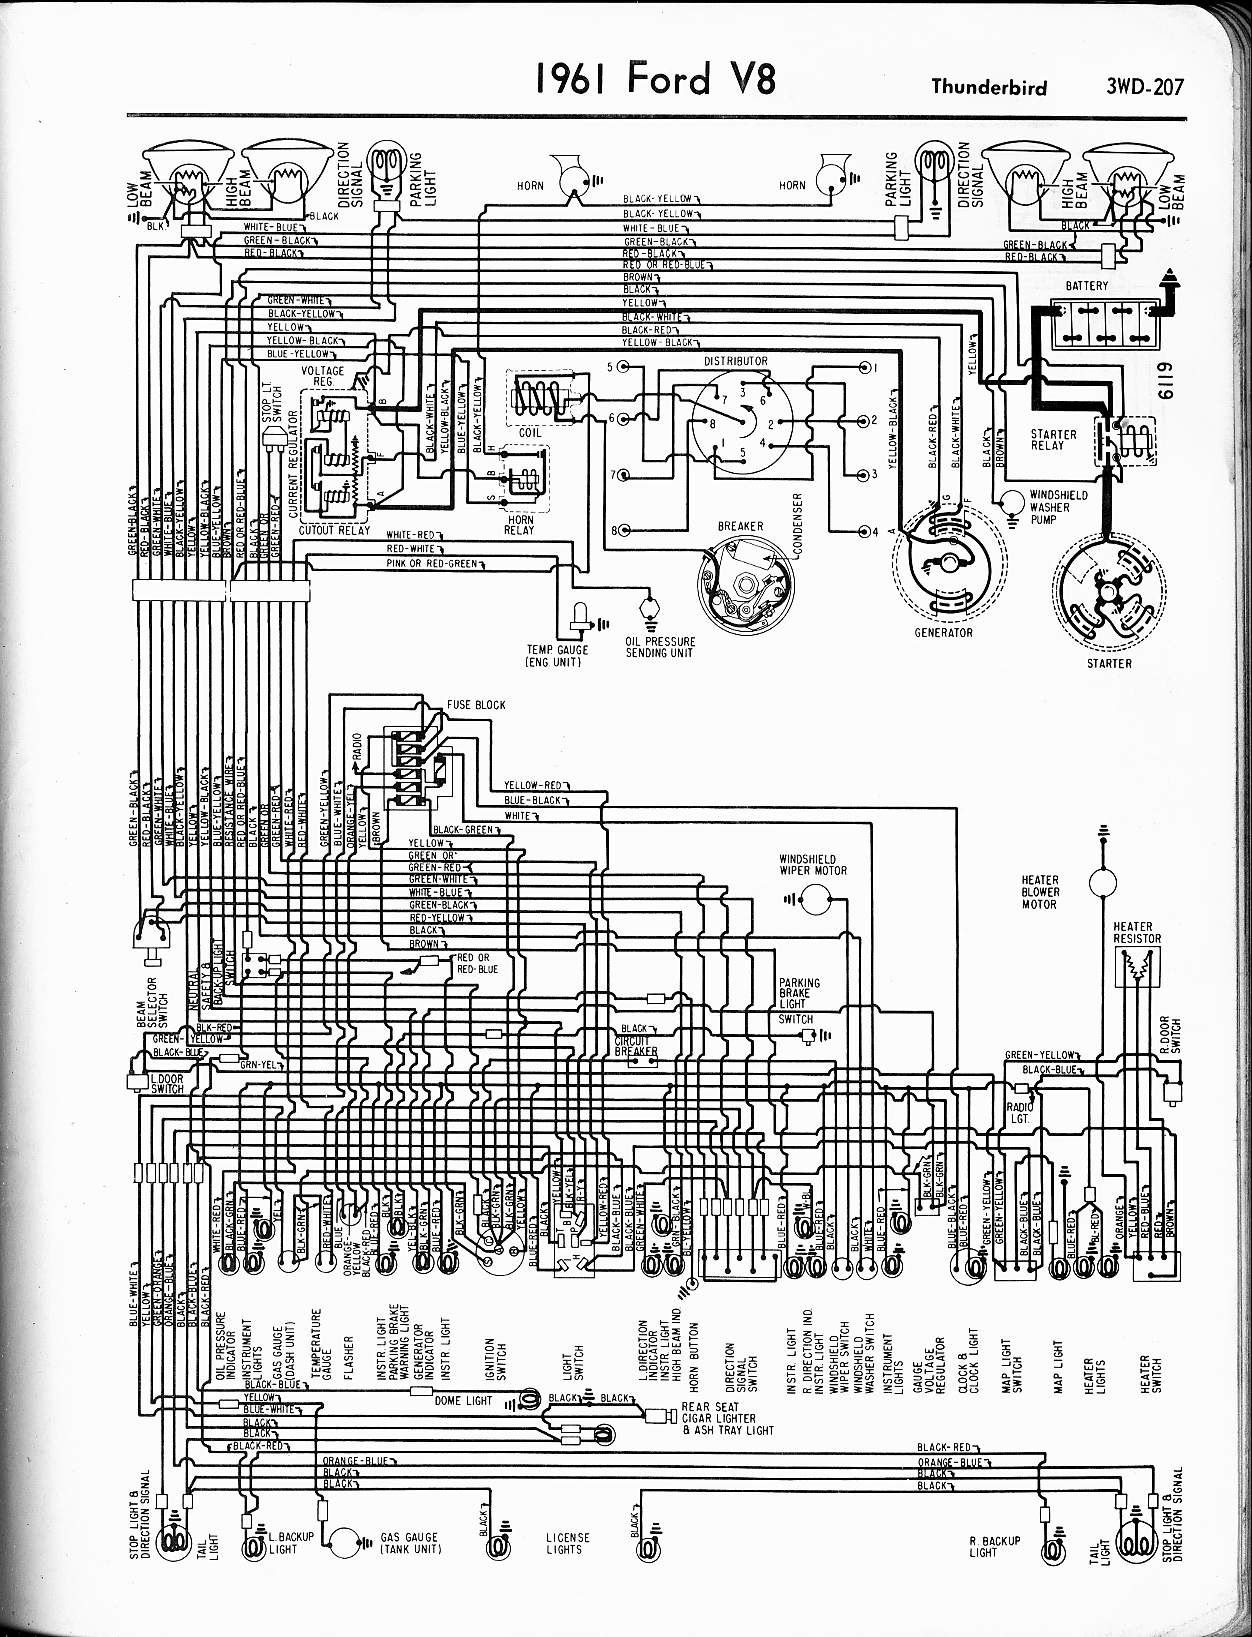 MWire5765 207 57 65 ford wiring diagrams 1965 ford thunderbird wiring harness at aneh.co